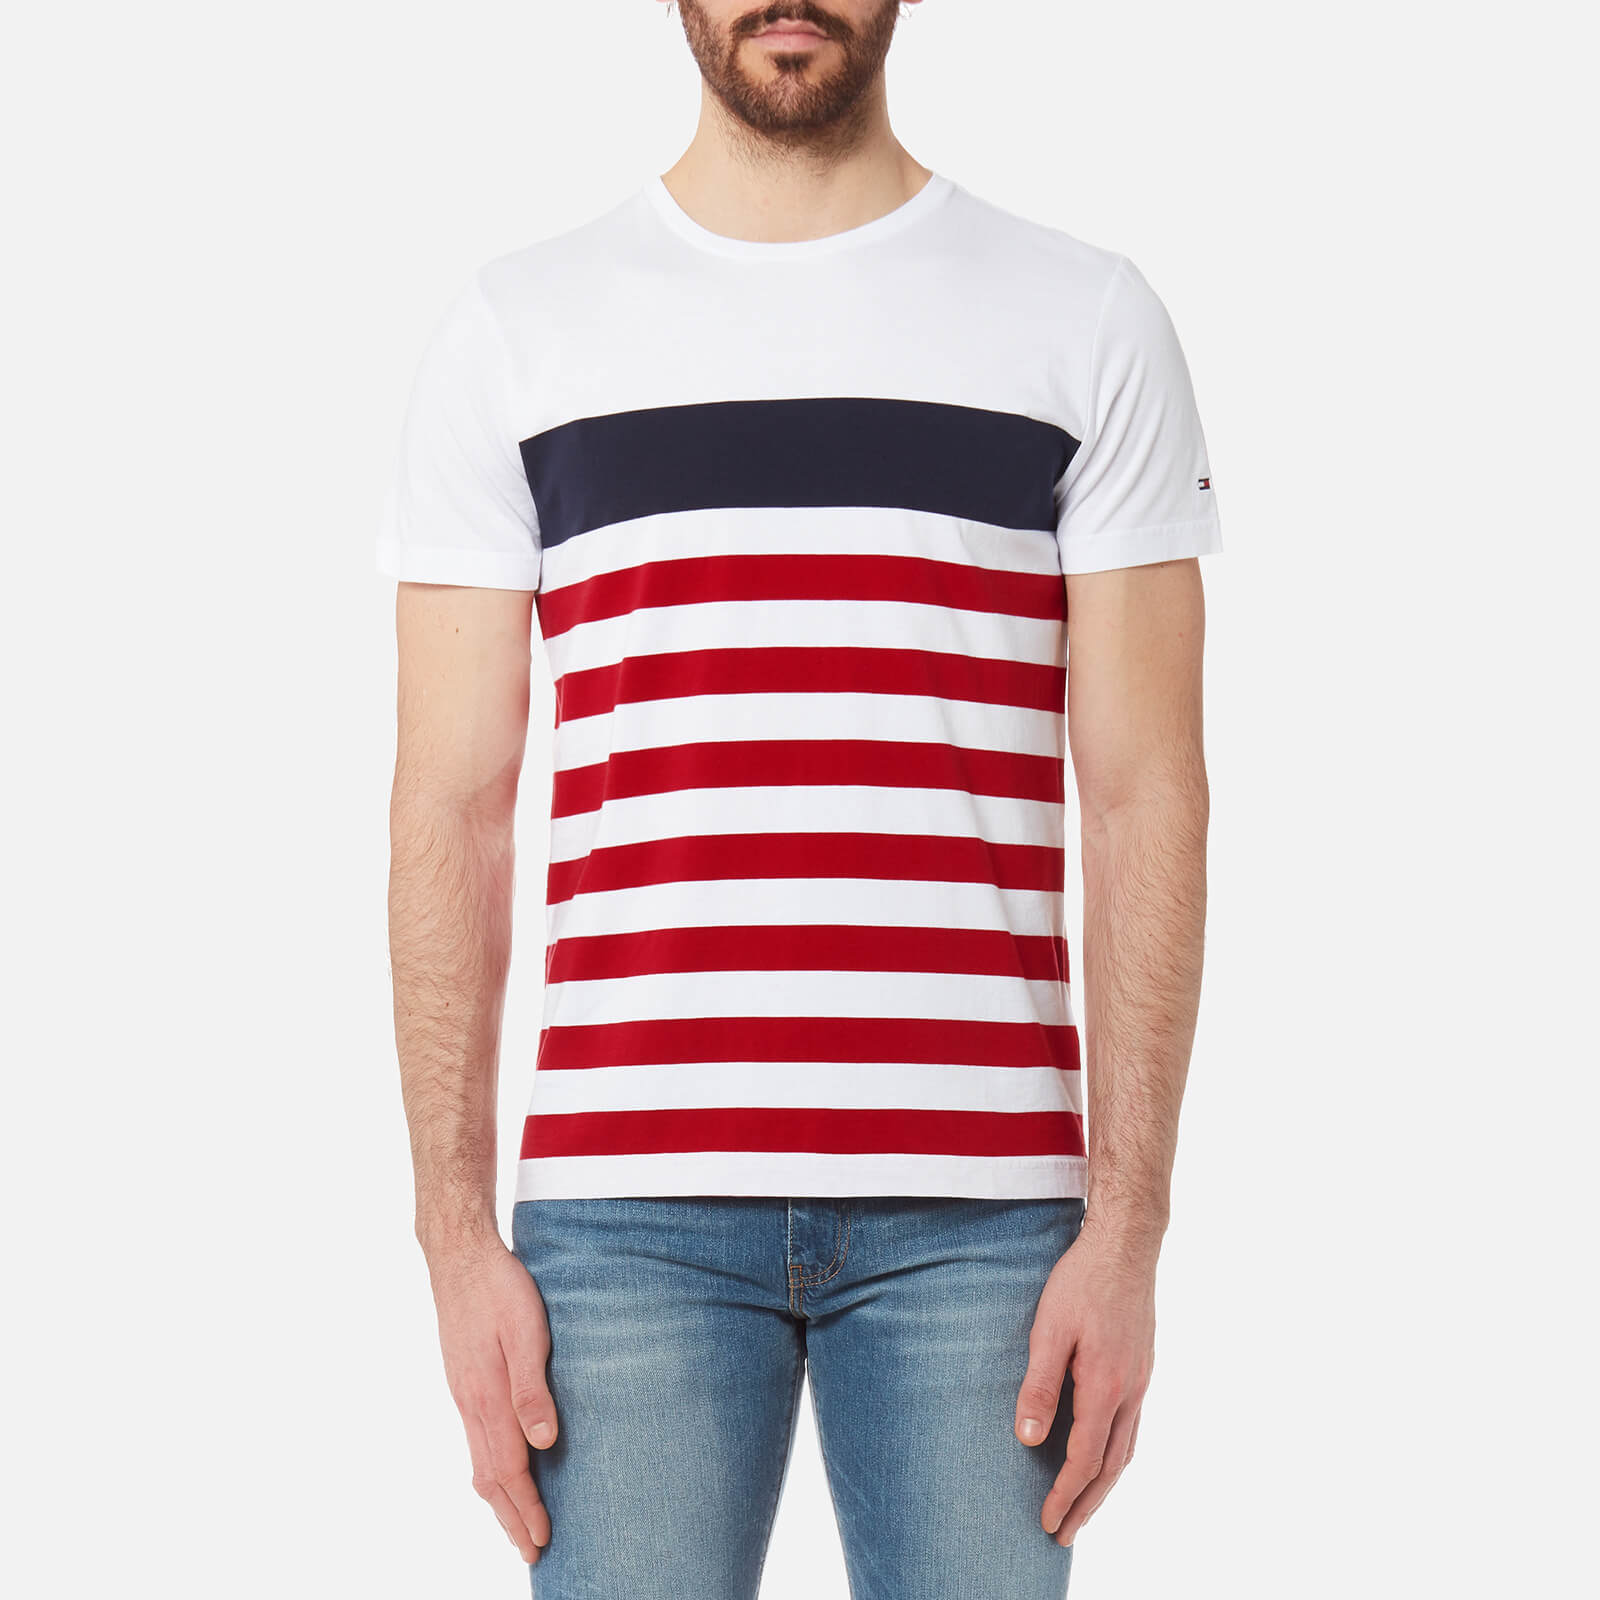 28204f58 Tommy Hilfiger Men's Nas Striped T-Shirt - Bright White Clothing |  TheHut.com